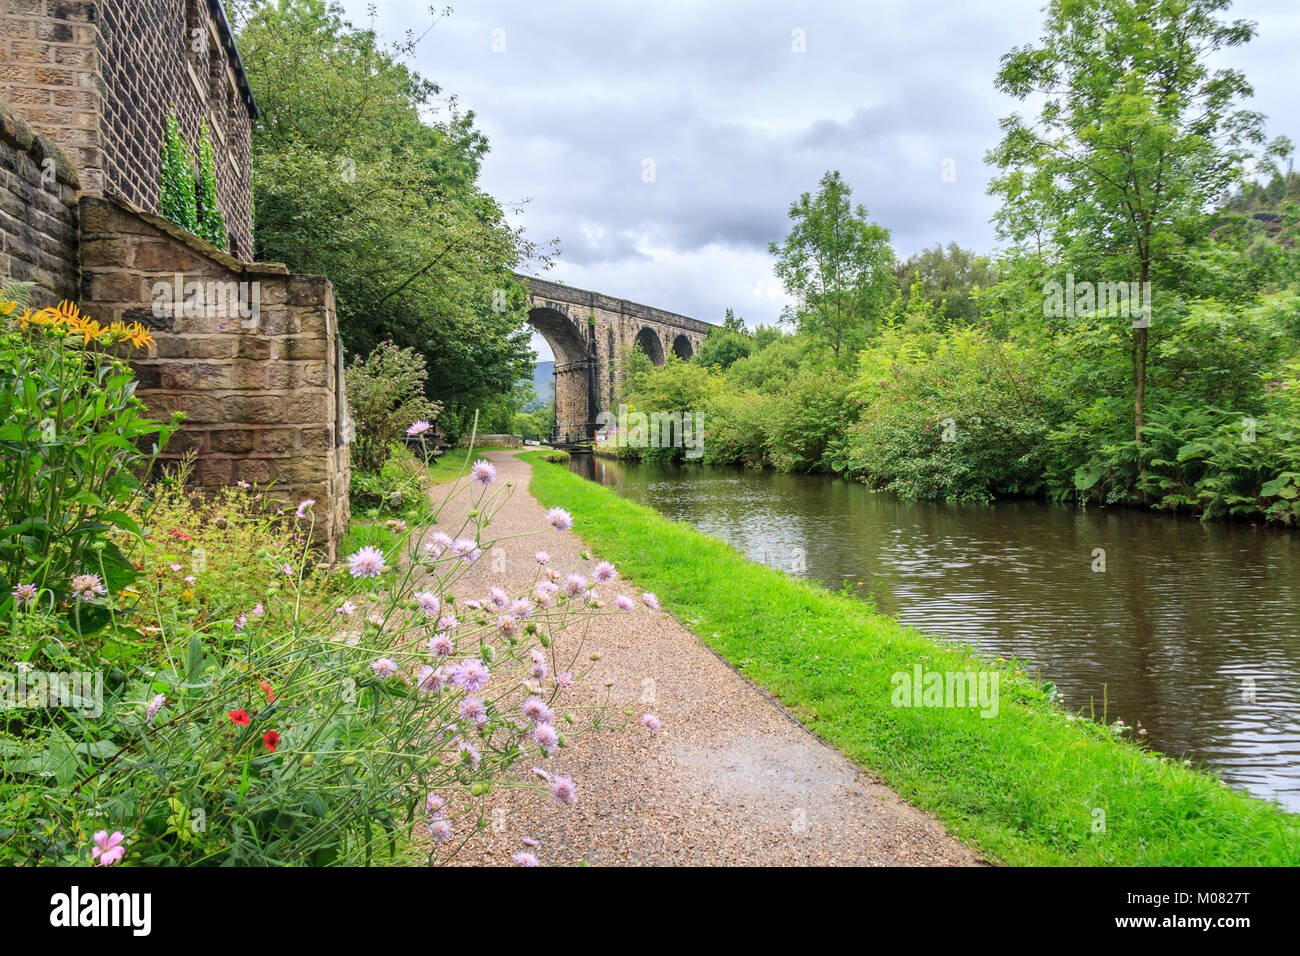 Wild flowers, towpath, viaduct over the Huddersfield Narrow Canal, Uppermill, Oldham Lancashire, England, United - Stock Image